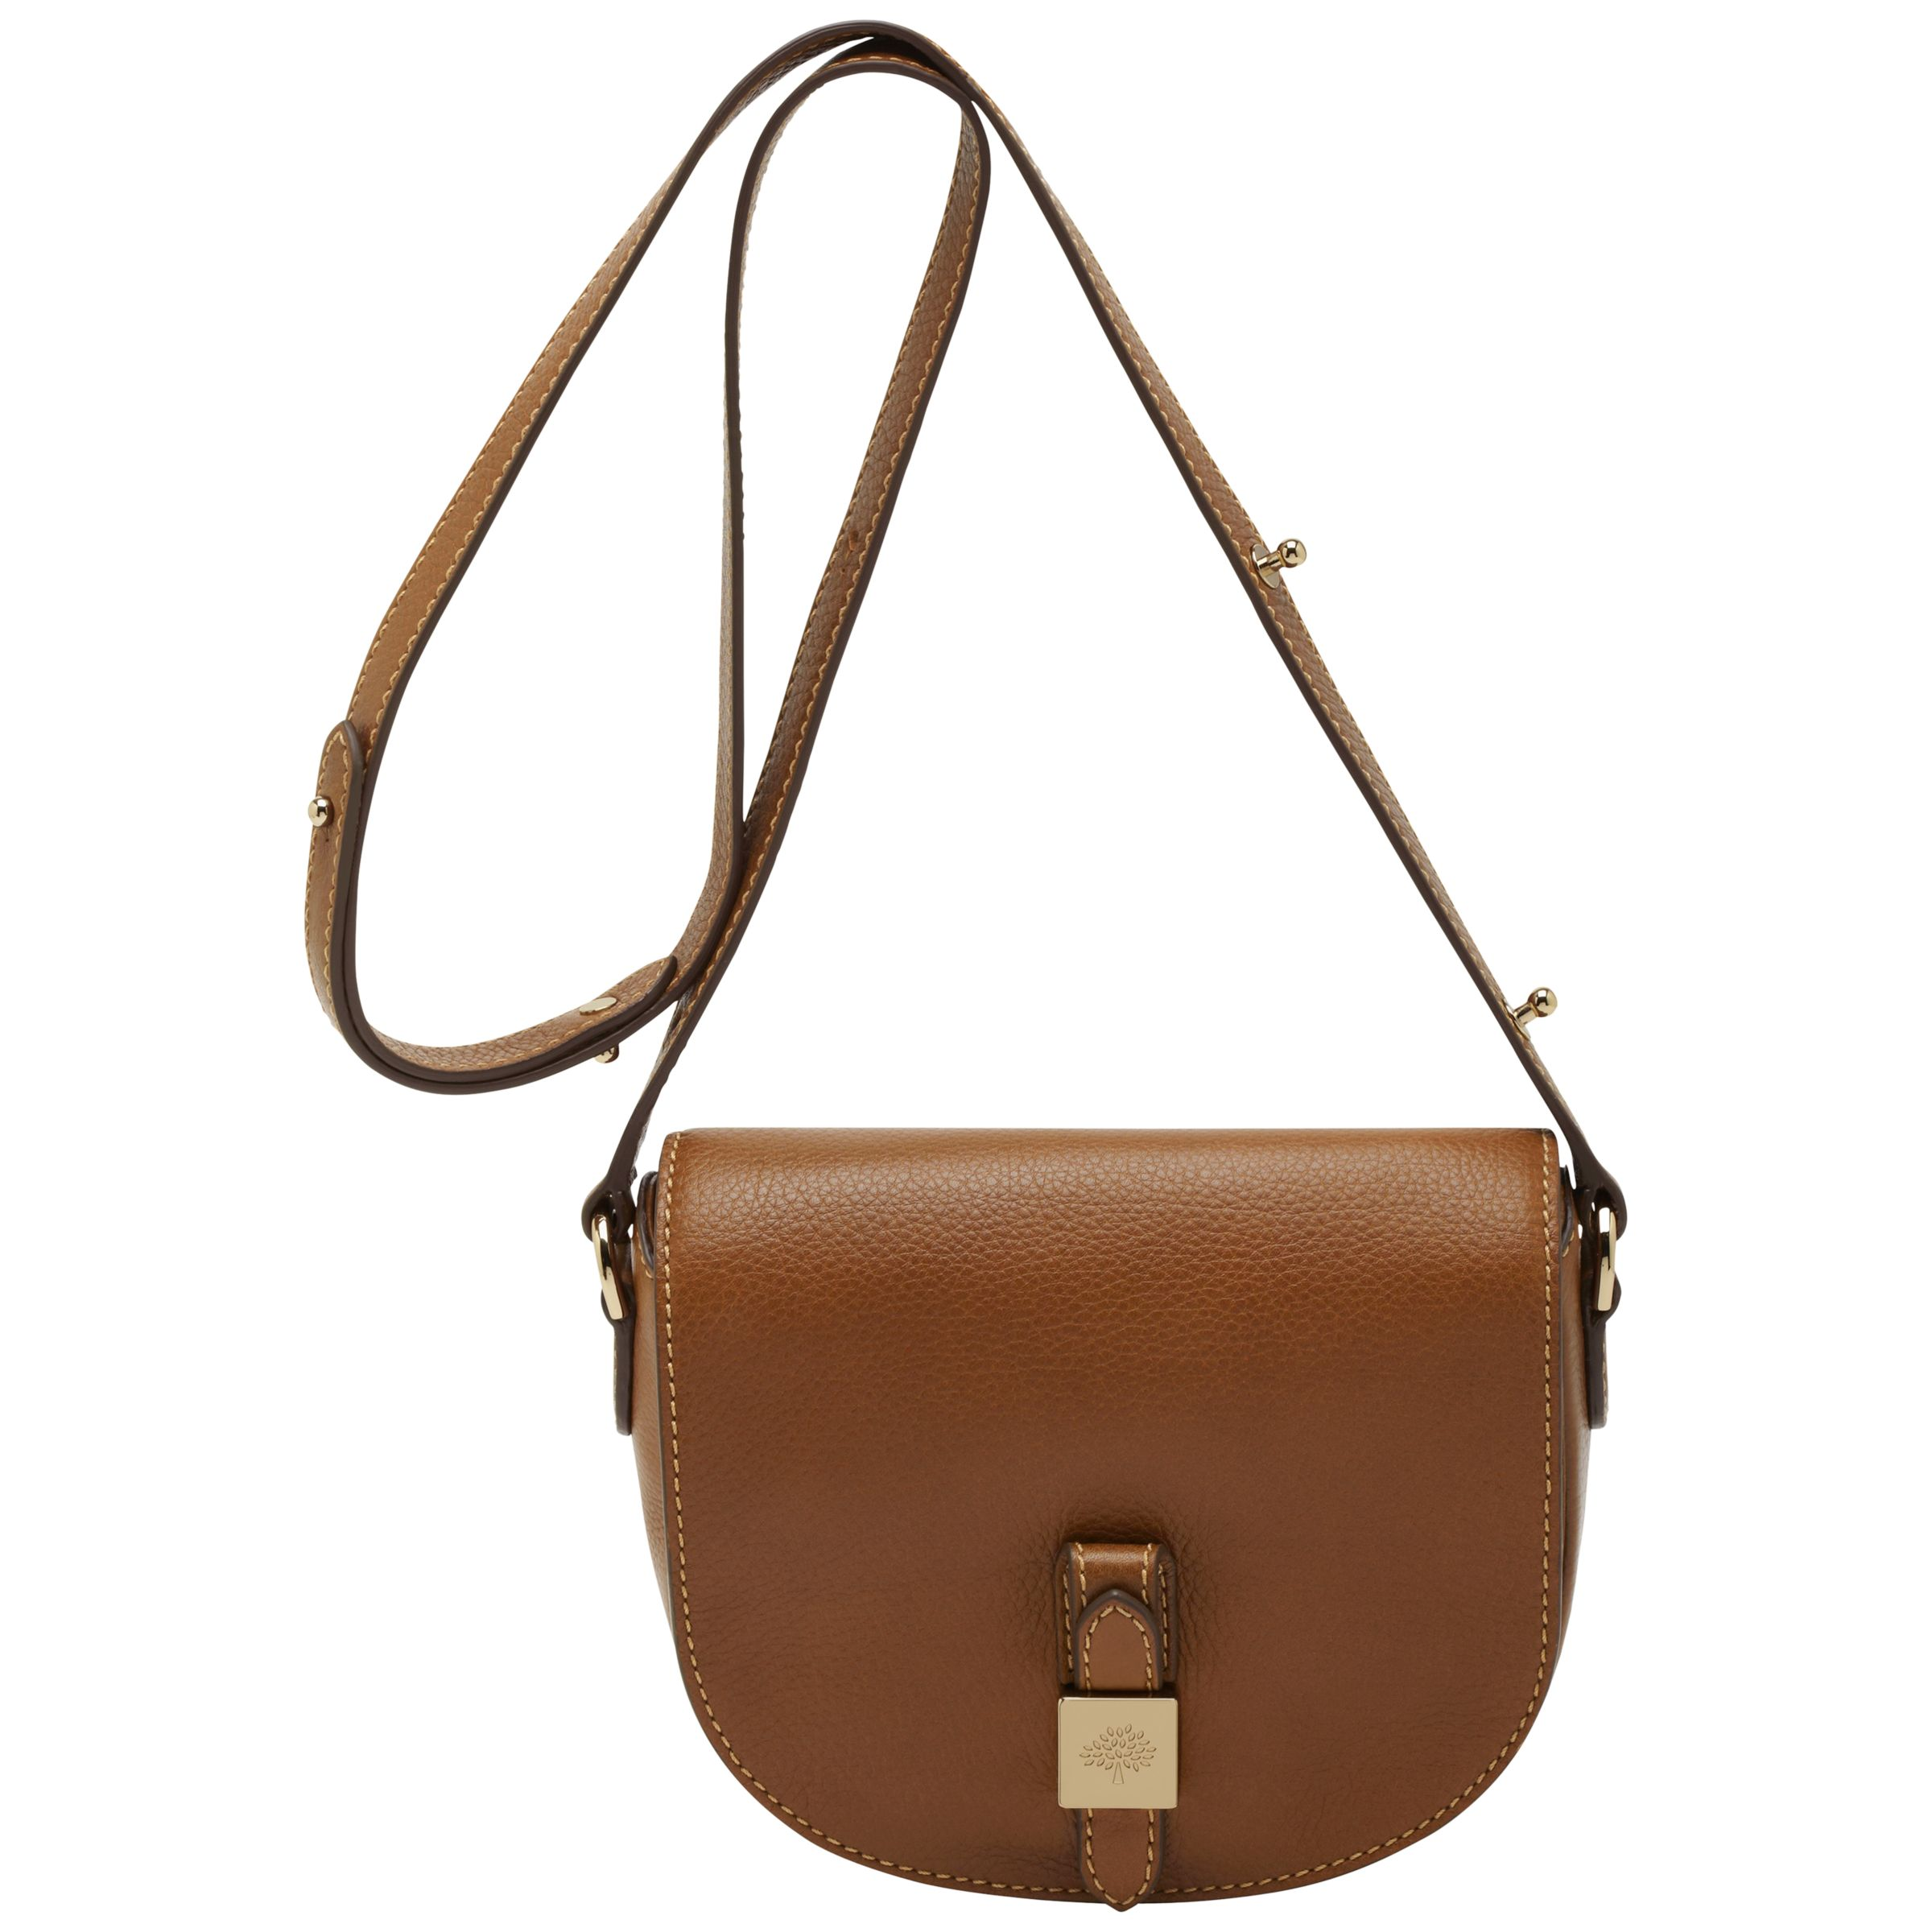 c0bc3b88acc6 Mulberry Tessie Small Leather Satchel Bag at John Lewis   Partners